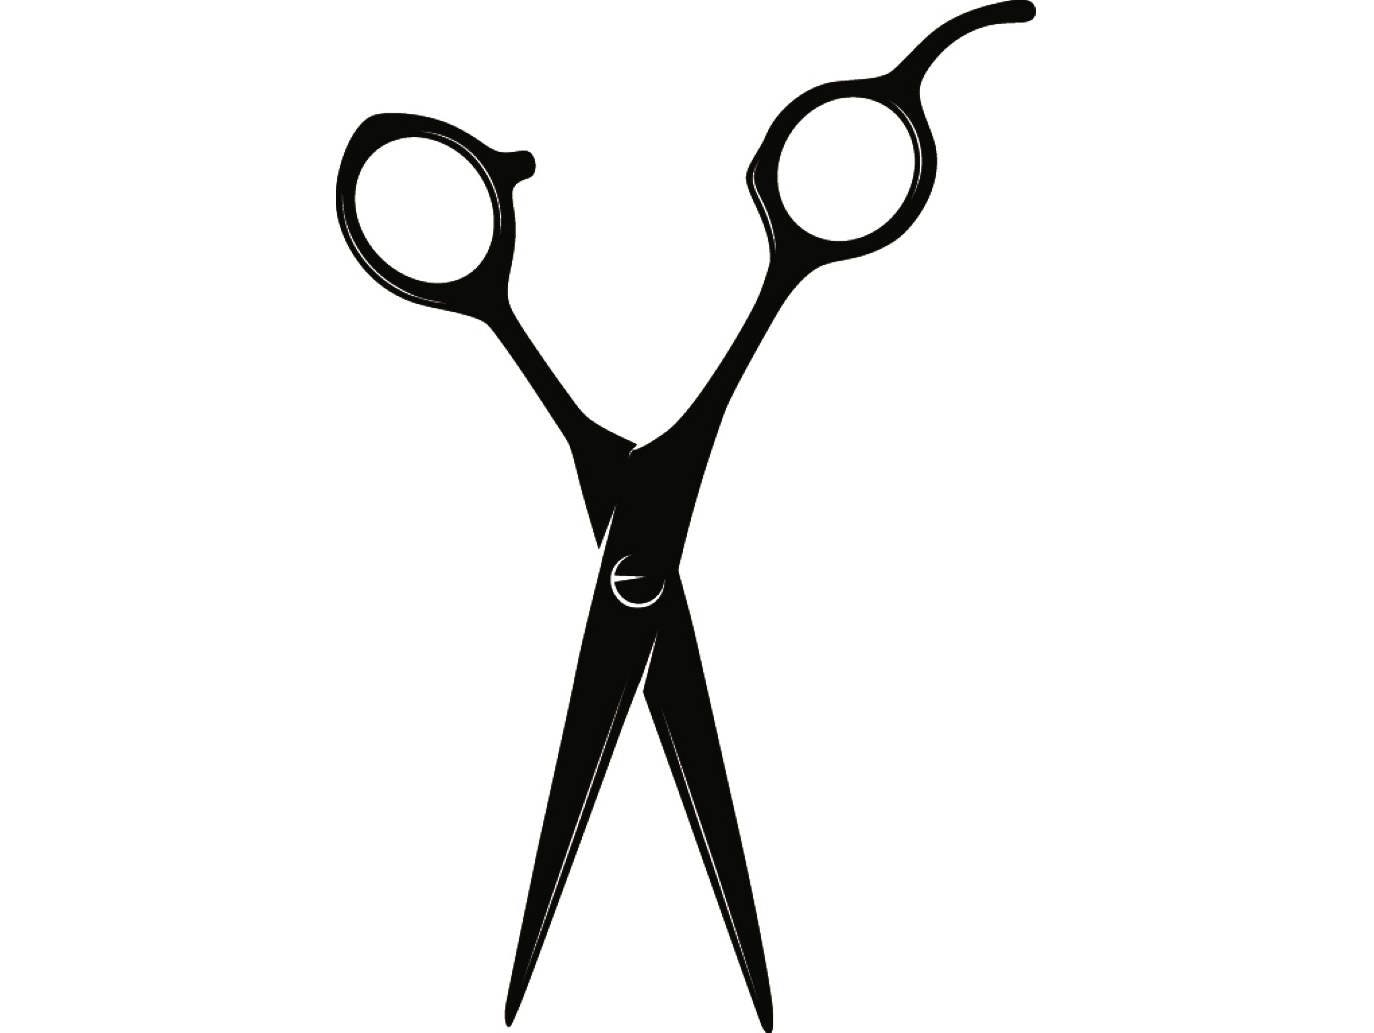 Hair Scissors 2 Barber Sheer Hairstylist Salon Shop Haircut